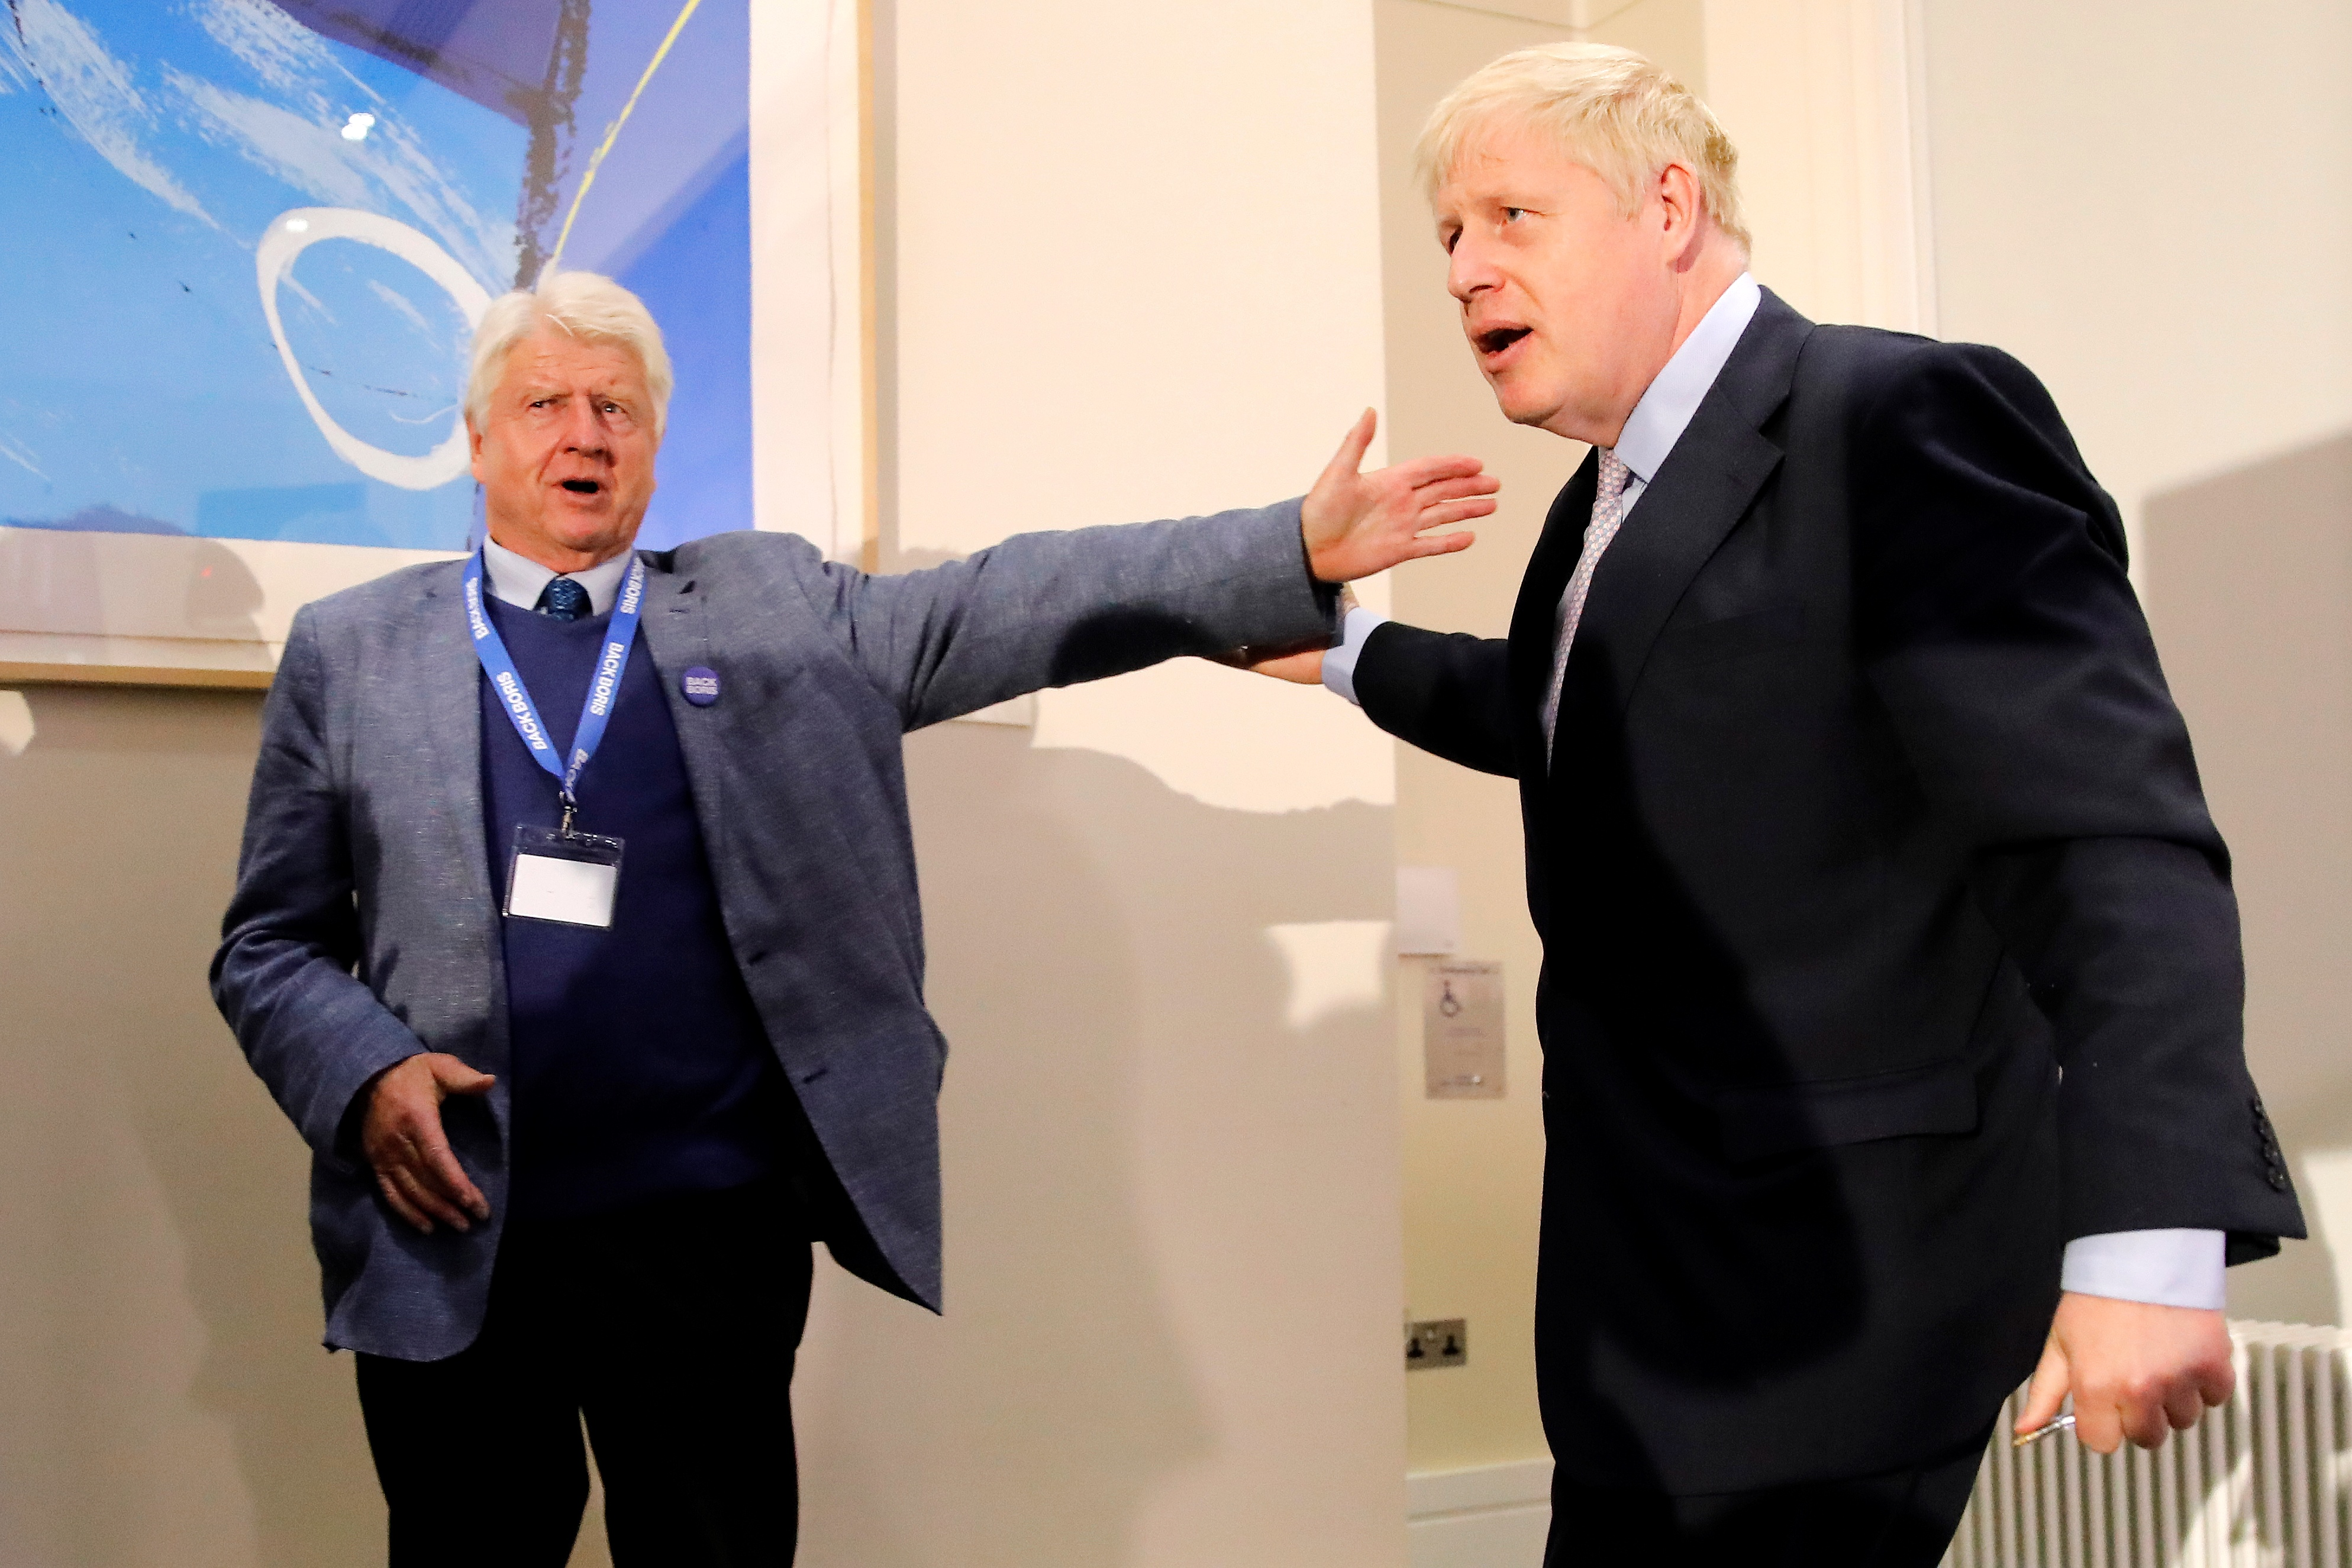 "Stanley Johnson (L), father of Conservative MP Boris Johnson, congratulates his son after he delivered his Conservative Party leadership campaign launch in London on June 12, 2019. - Boris Johnson launched his campaign Wednesday to replace Theresa May as Britain's next leader, as lawmakers moved to stop him and other hardliners from delivering a ""no deal"" Brexit. The former foreign secretary is the favourite among 10 candidates to succeed May, who quit after failing to take Britain out of the European Union on schedule. (Photo by Tolga AKMEN / AFP)        (Photo credit should read TOLGA AKMEN/AFP via Getty Images)"